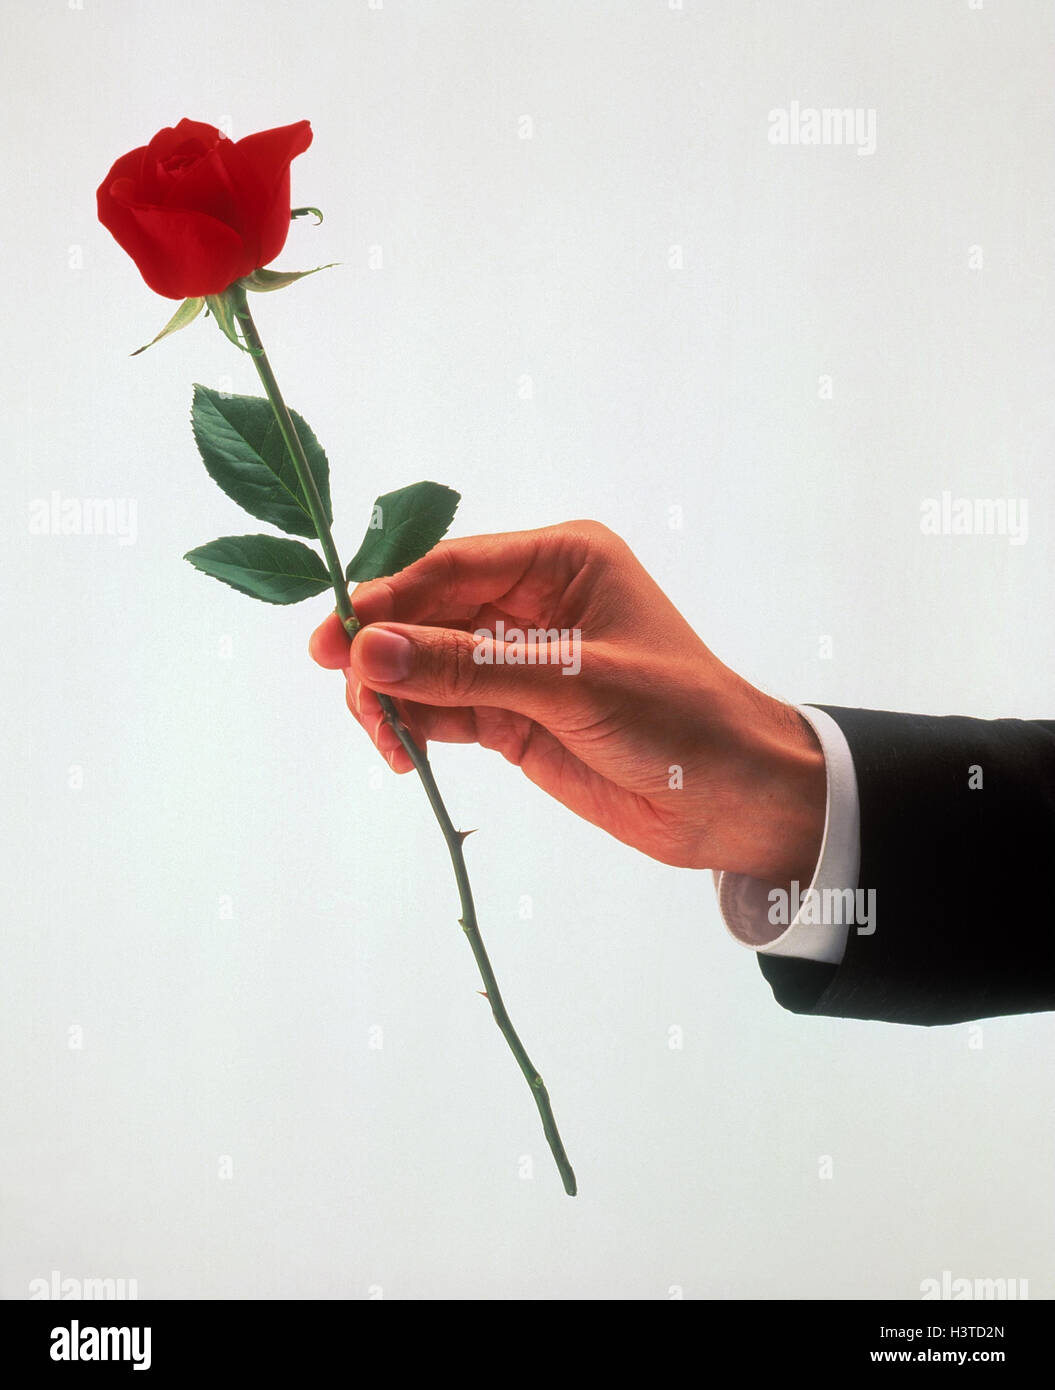 Man, detail, hand, rose, red, copy space, love, present